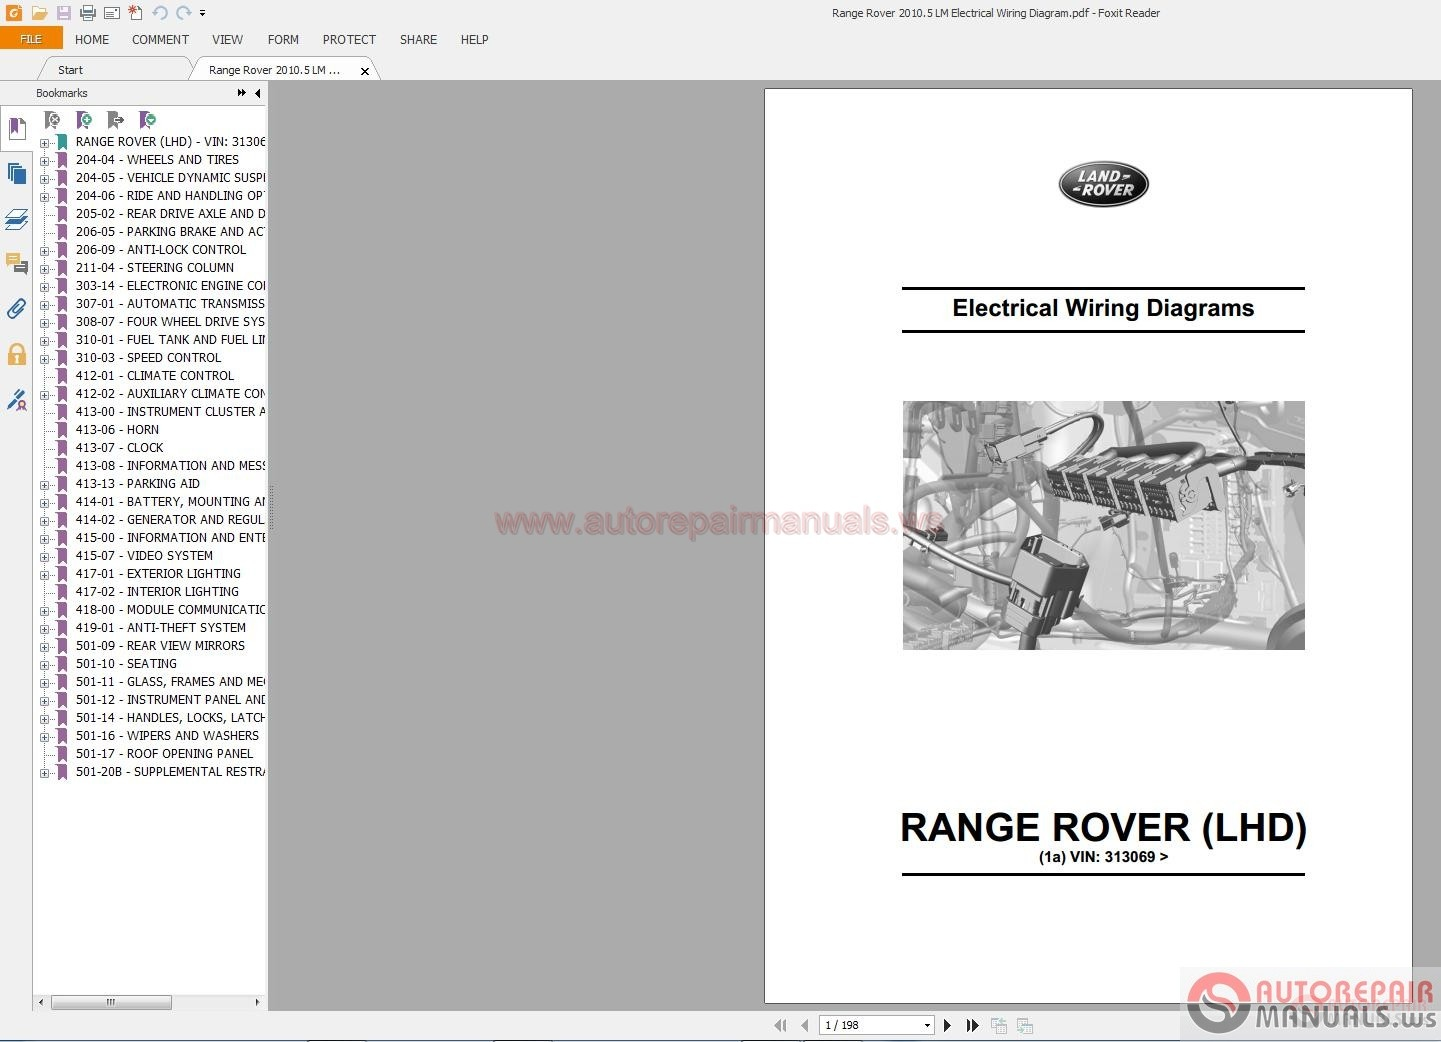 Range Rover 2010 5 Lm Electrical Wiring Diagram